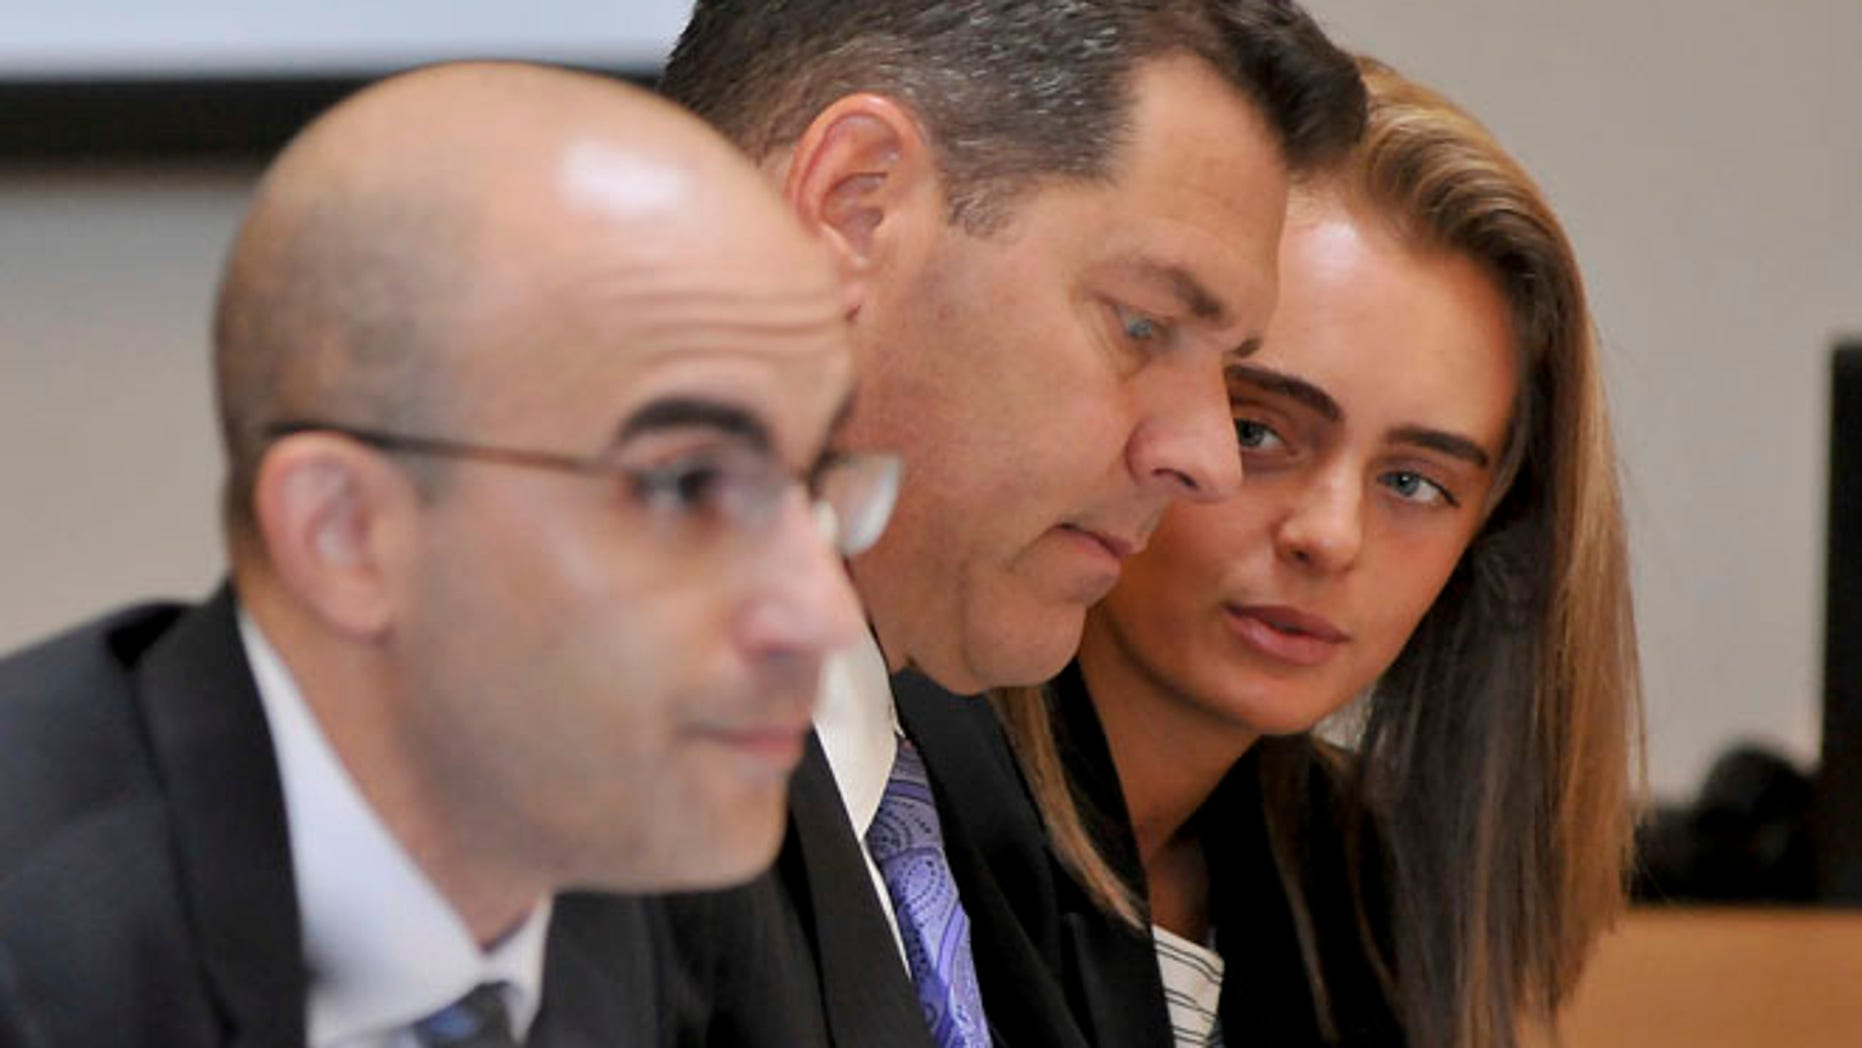 June 16: Defendant Michelle Carter, right, confers with her lawyer Joe Cataldo, center, as second defense attorney Cory Madera listens to testimonies.